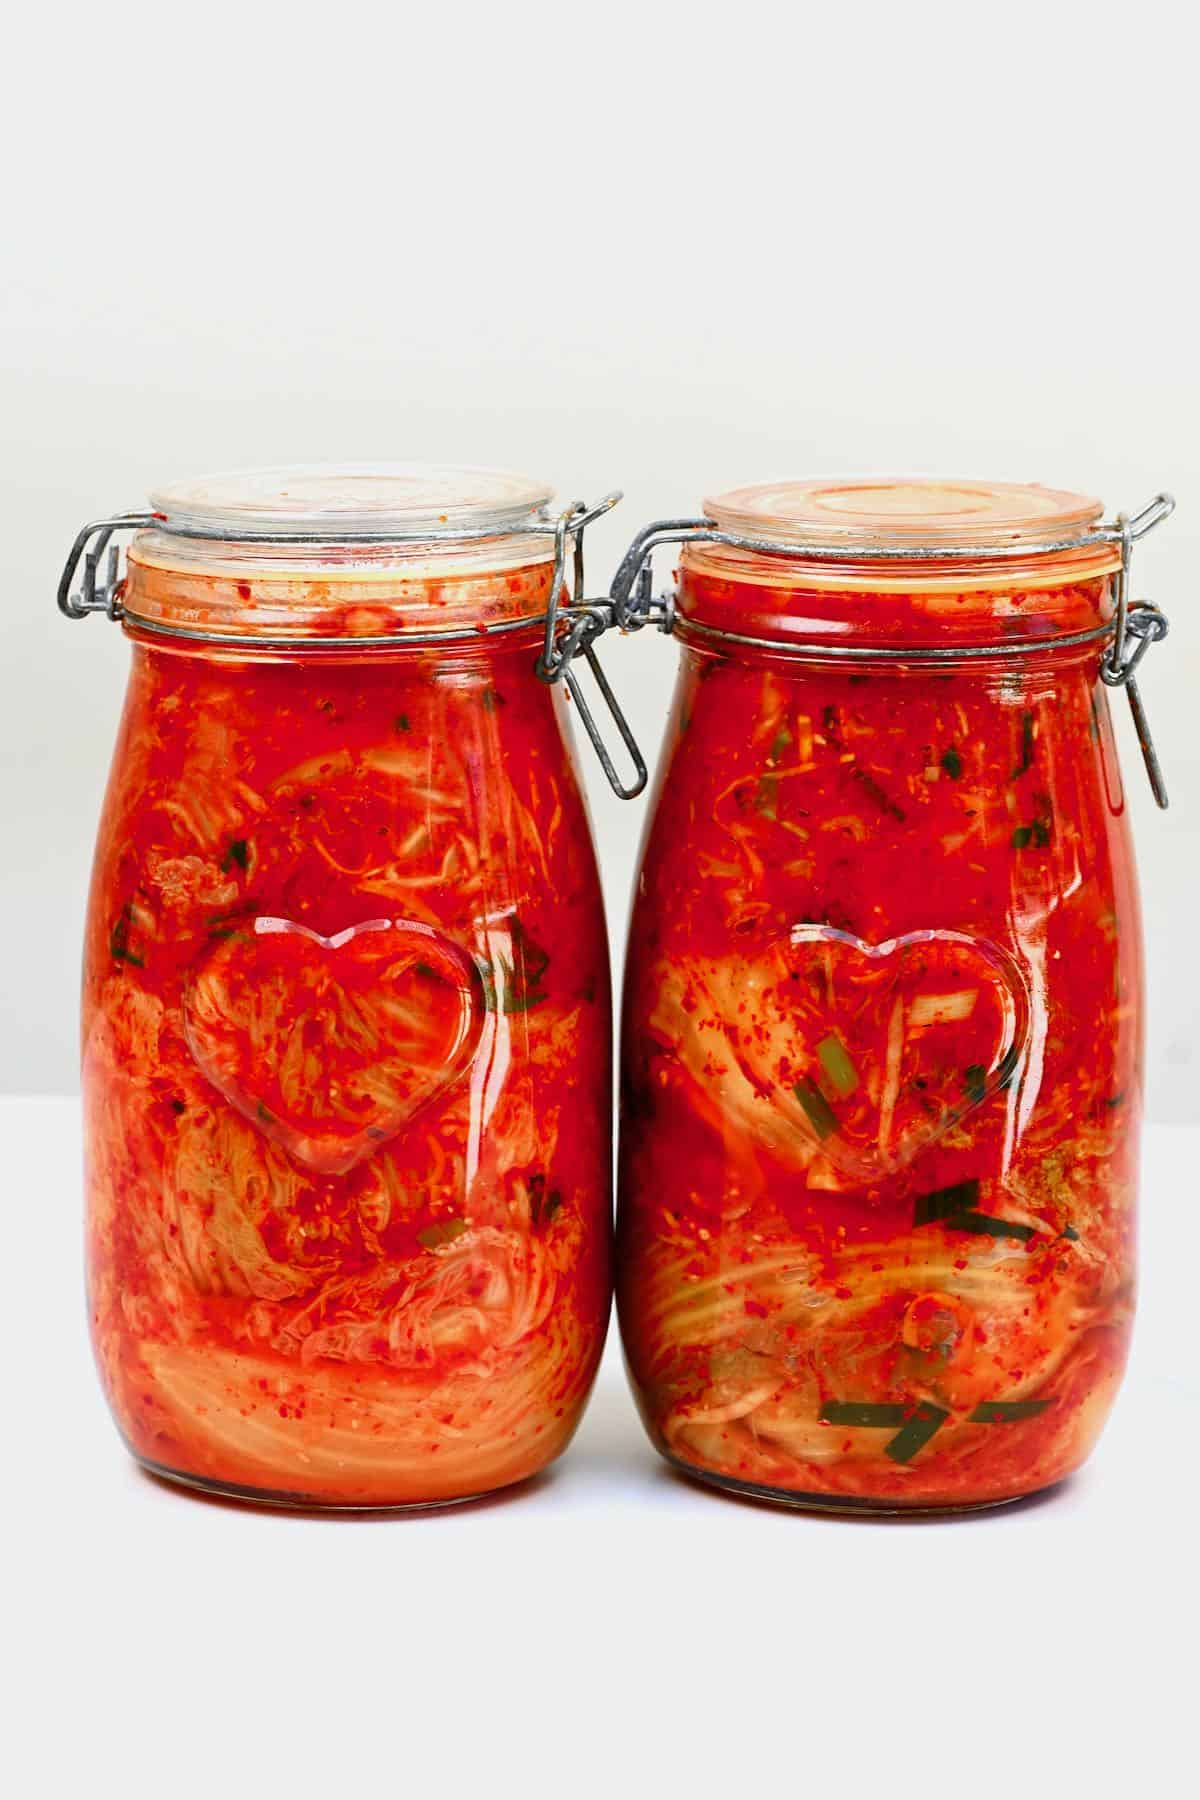 Two jars with kimchi